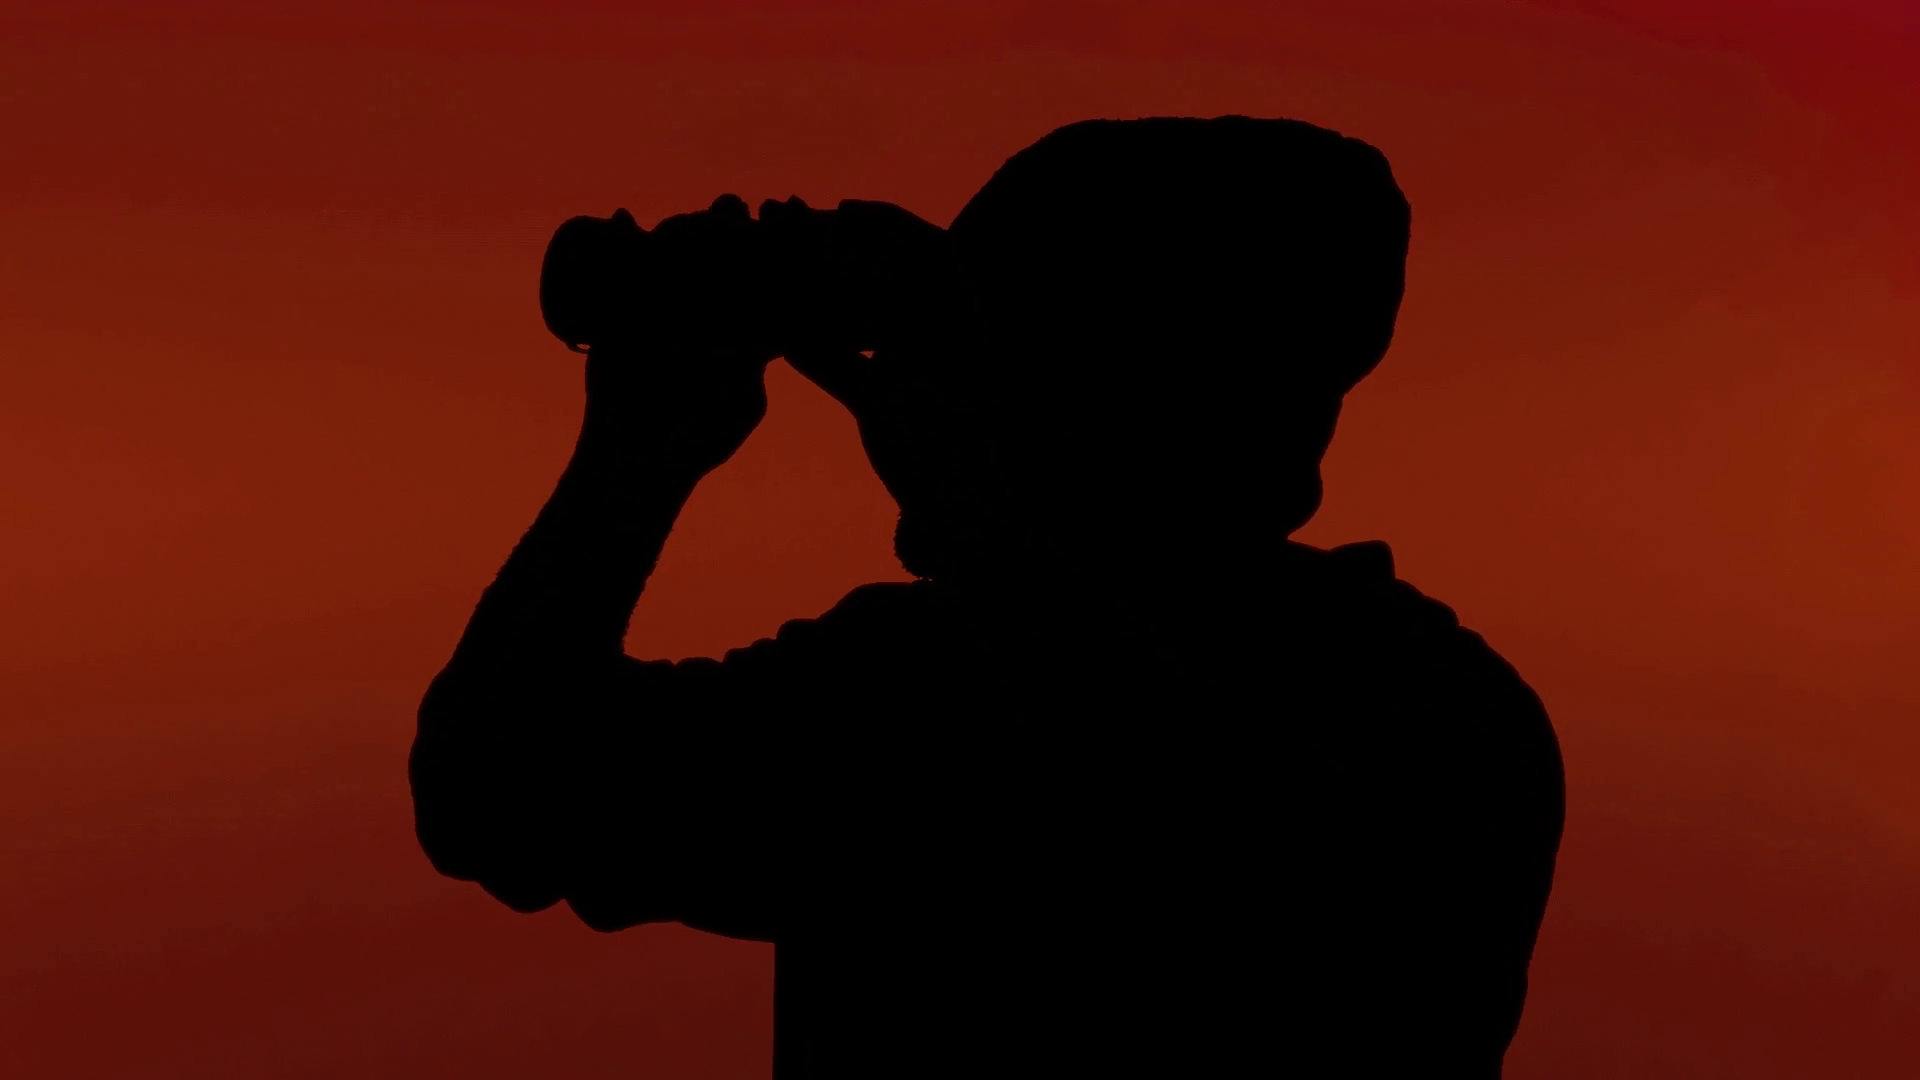 Silhouette man binoculars red. A man looking around through a pair of  binoculars. Silhouette shot on red background. Stock Video Footage -  VideoBlocks - Looking Through Binoculars PNG